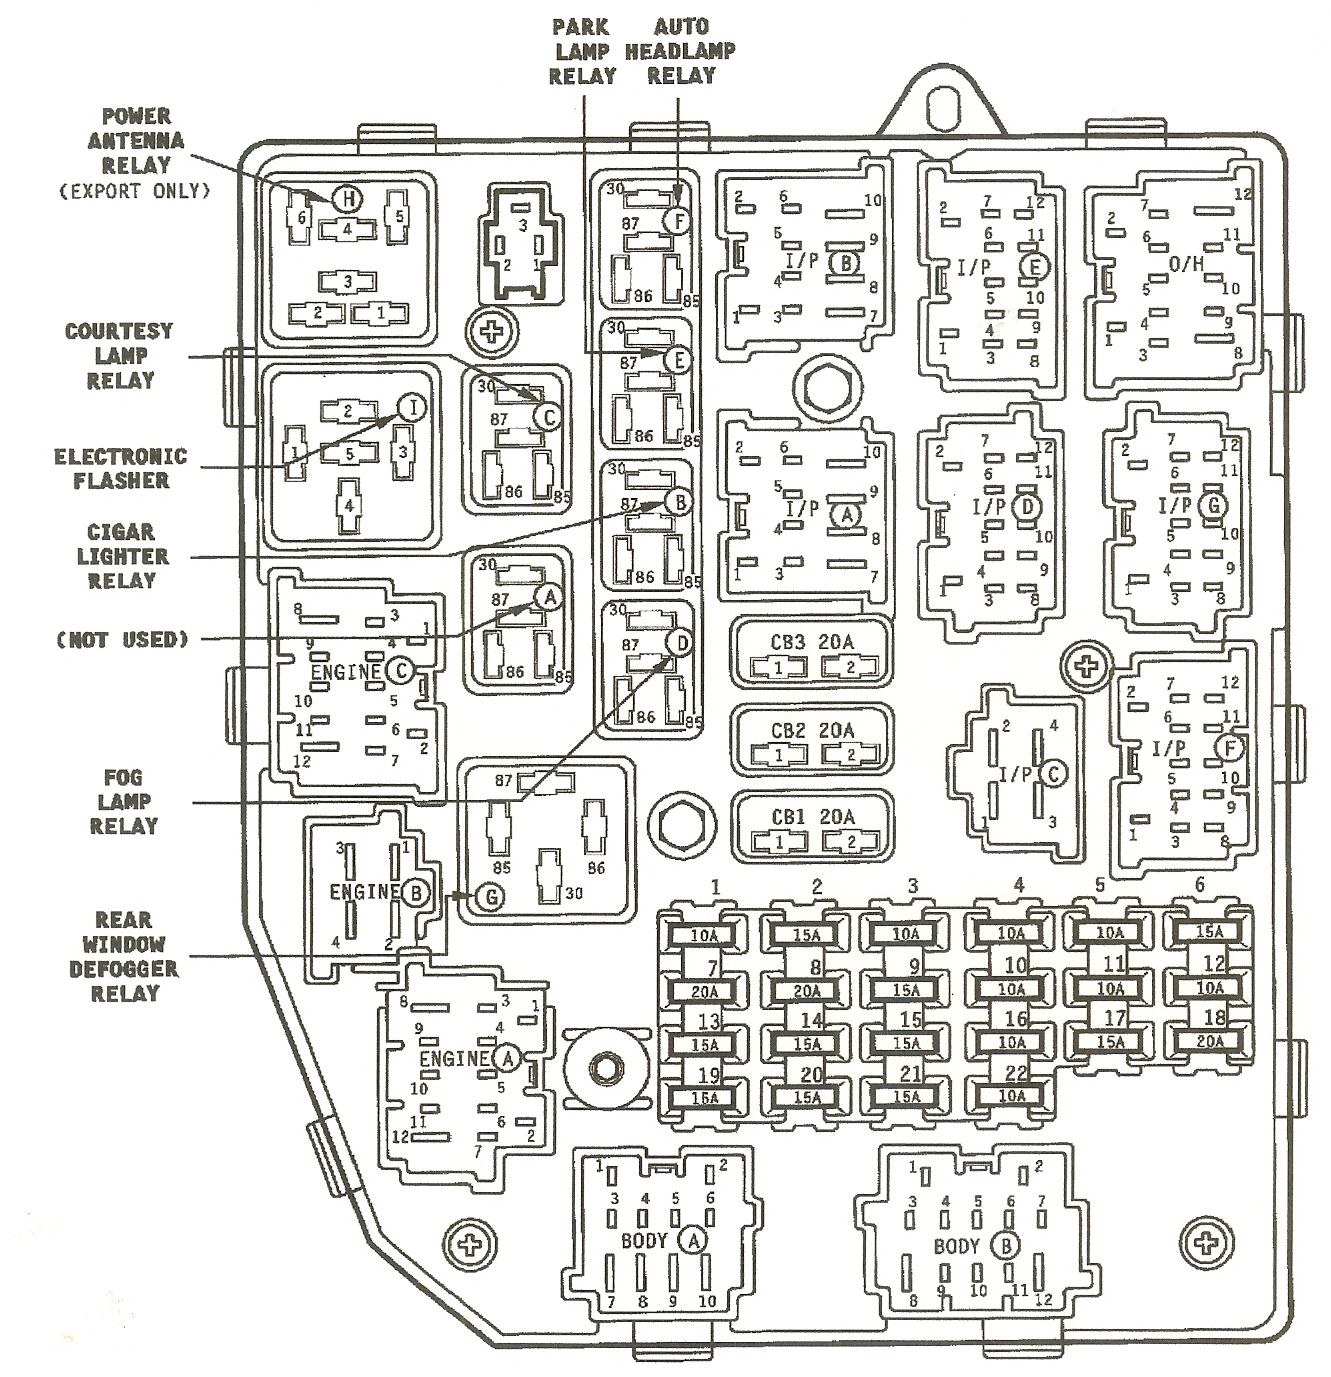 Pin 1996 Jeep Grand Cherokee Fuse Box Diagram/justanswer*com|jeep|7btcm Jeep  Grand Cherokee … | Jeep grand cherokee, Jeep grand cherokee limited, 2001 jeep  cherokeePinterest